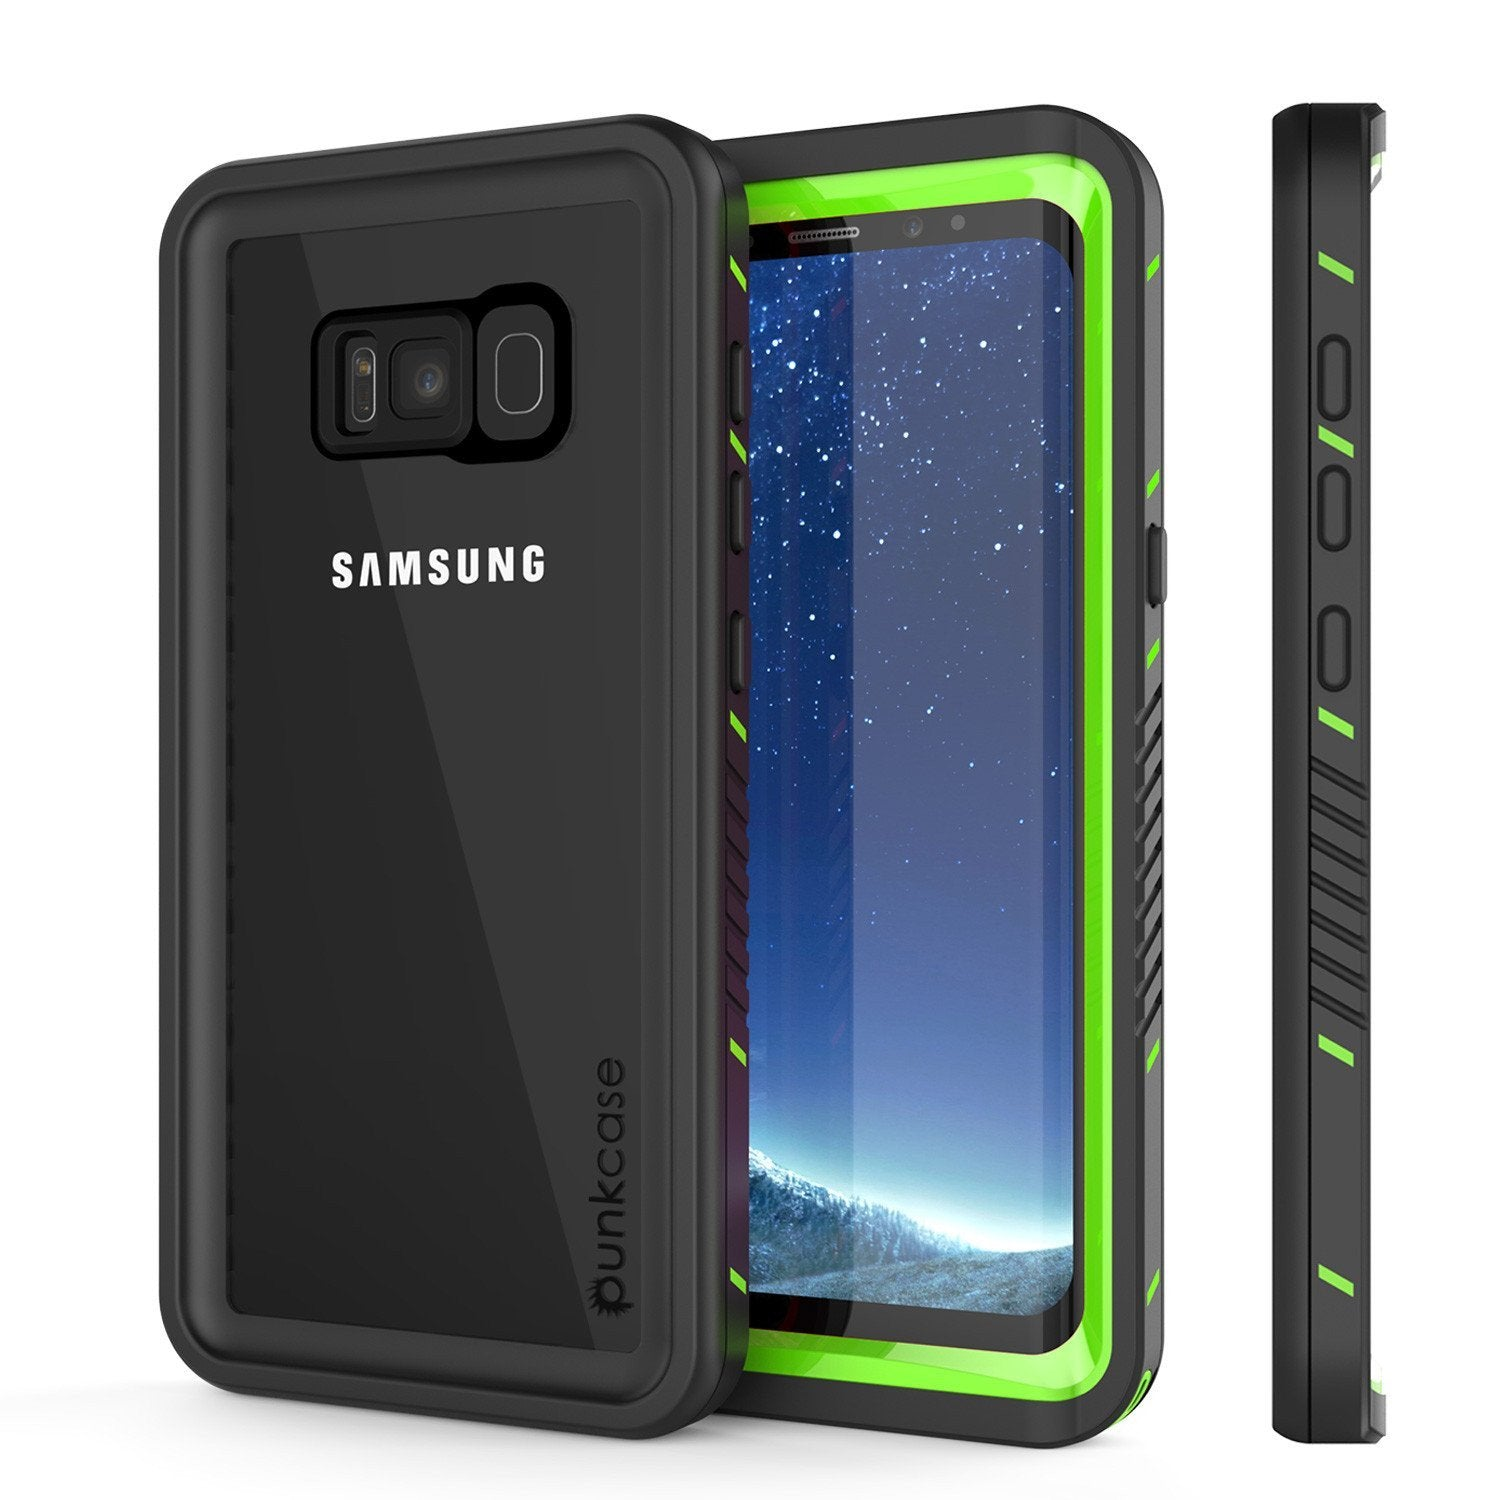 Galaxy S8 PLUS Case, Punkcase [Extreme Series] Armor Green Cover